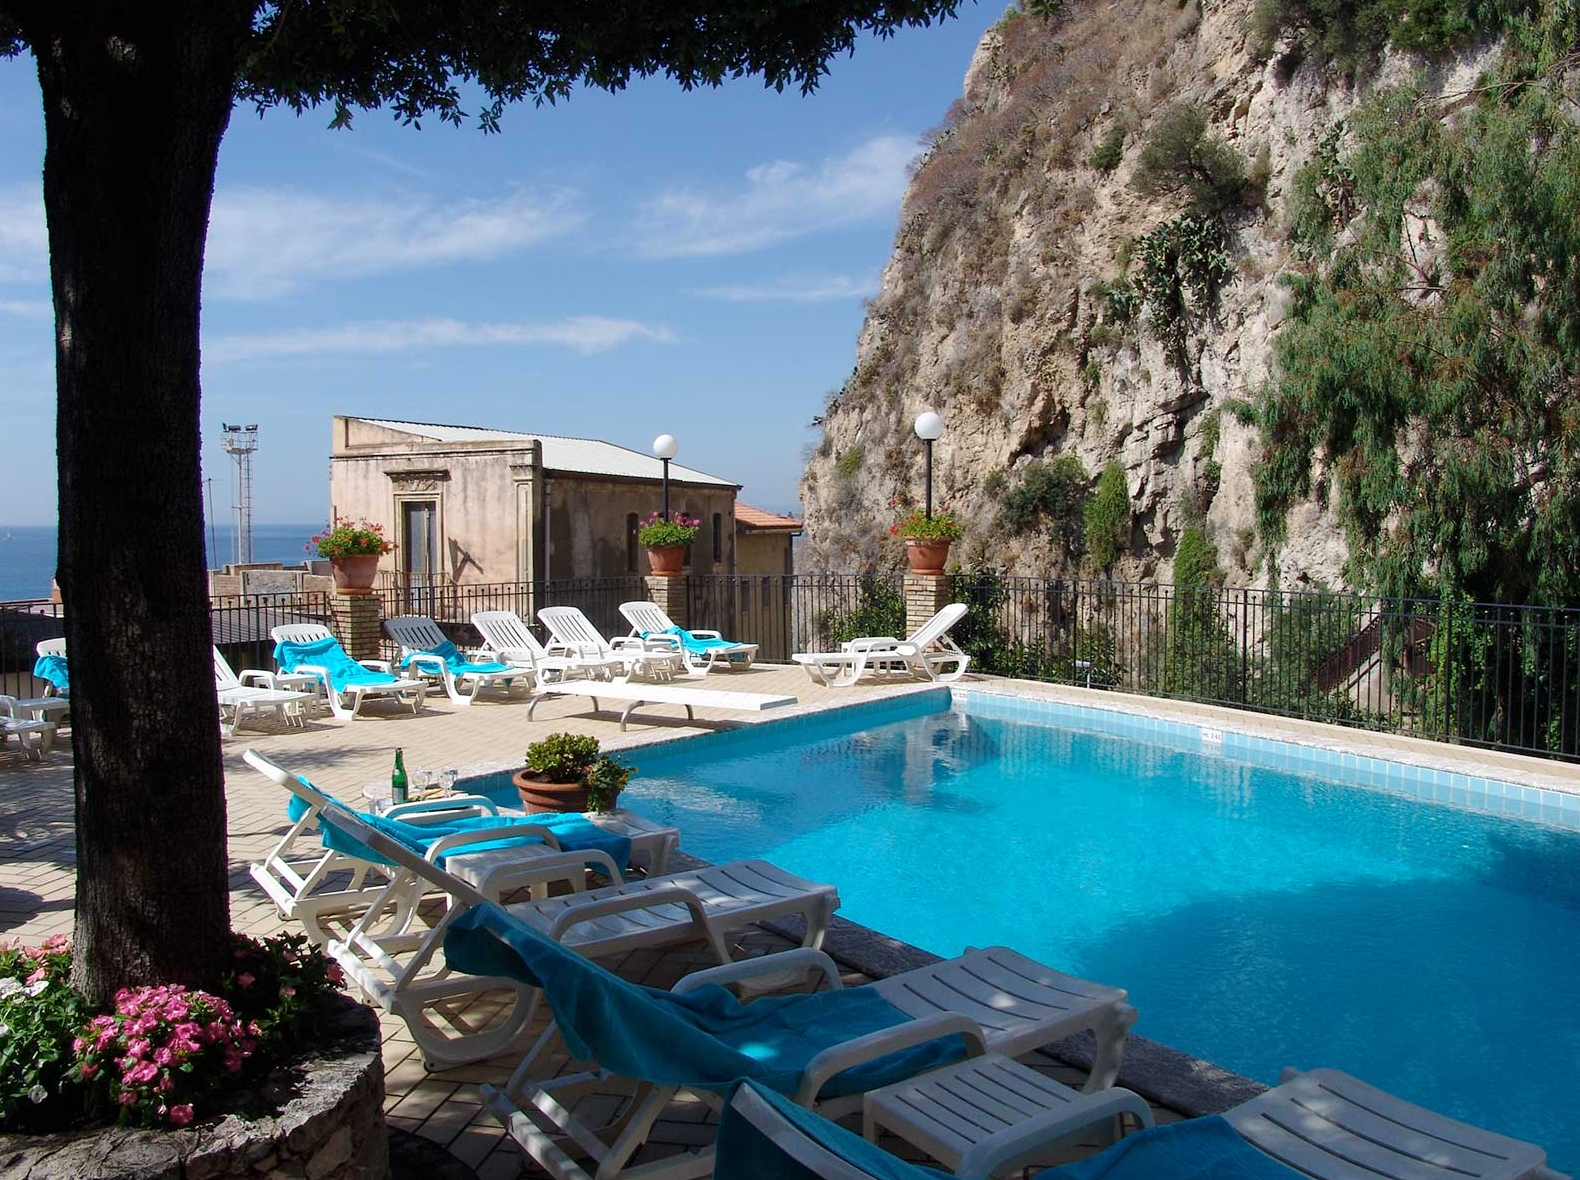 Corallo hotel sicily taormina purple travel - Hotels in catania with swimming pool ...